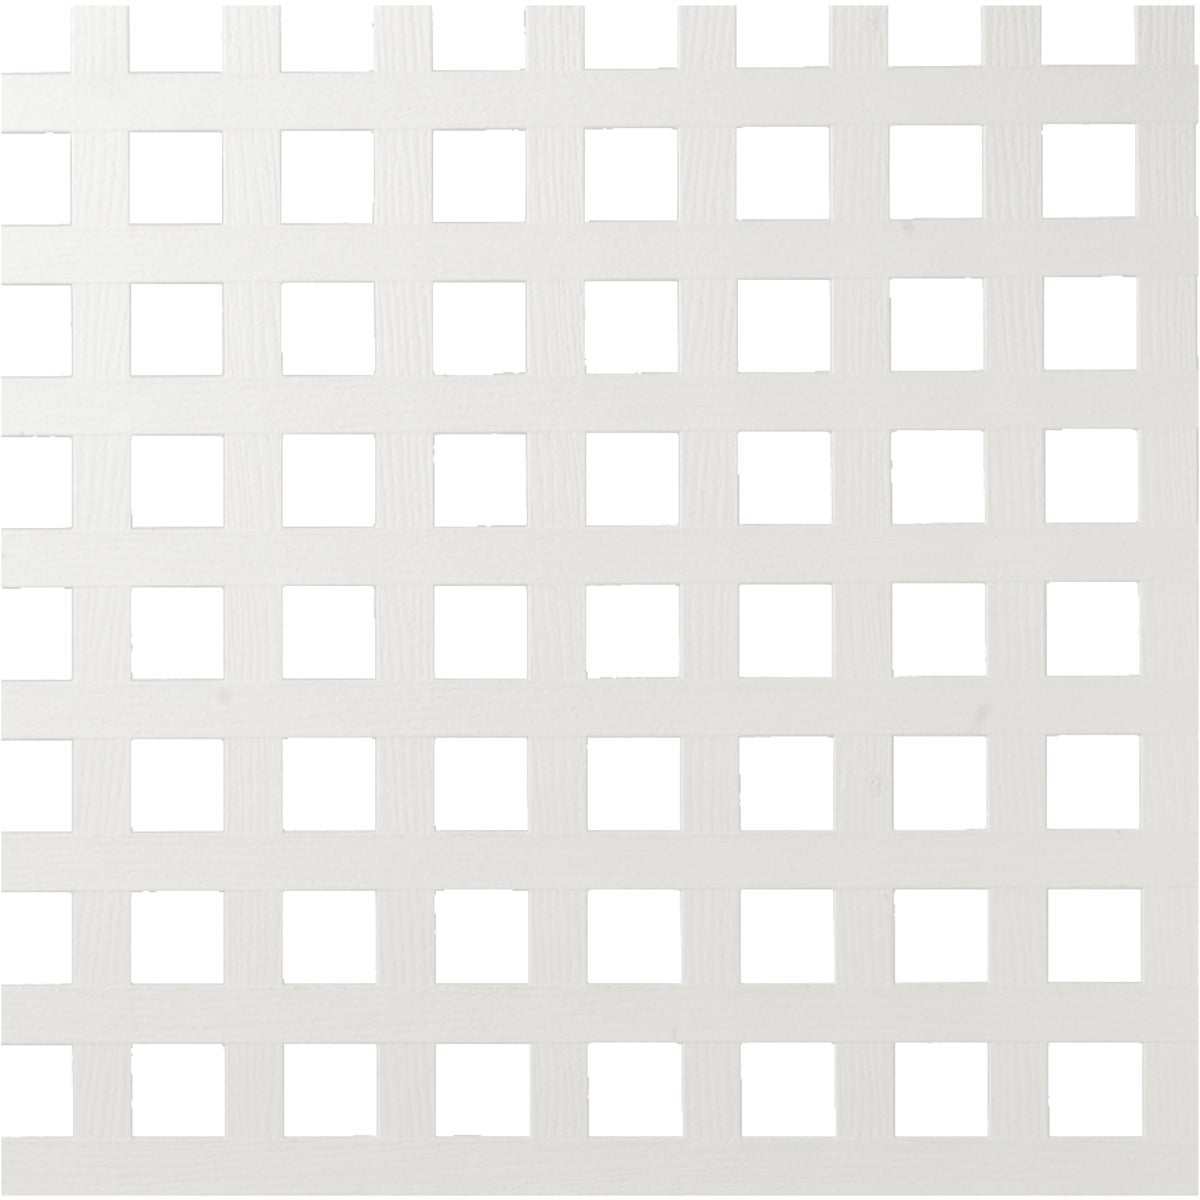 4X8 WHT SQ PRVY LATTICE